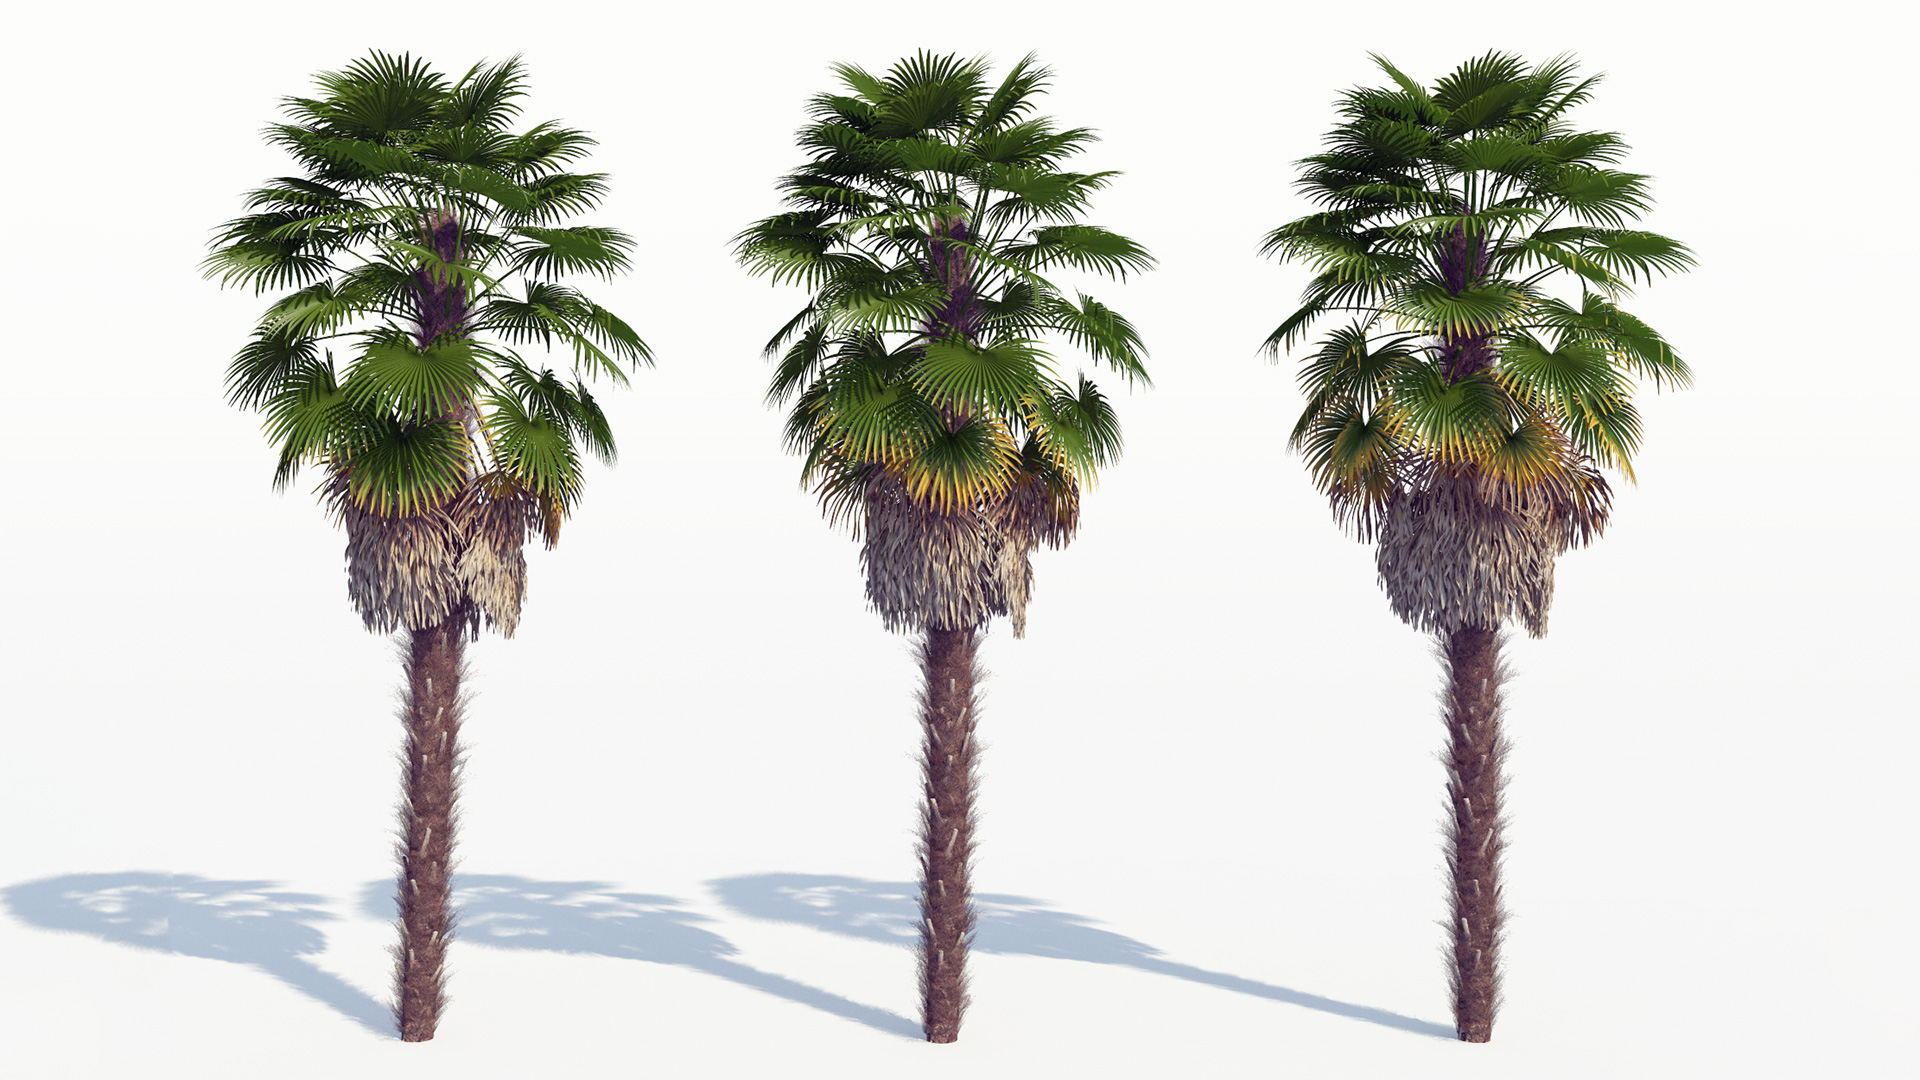 3D model of the Windmill palm Trachycarpus fortunei health variations